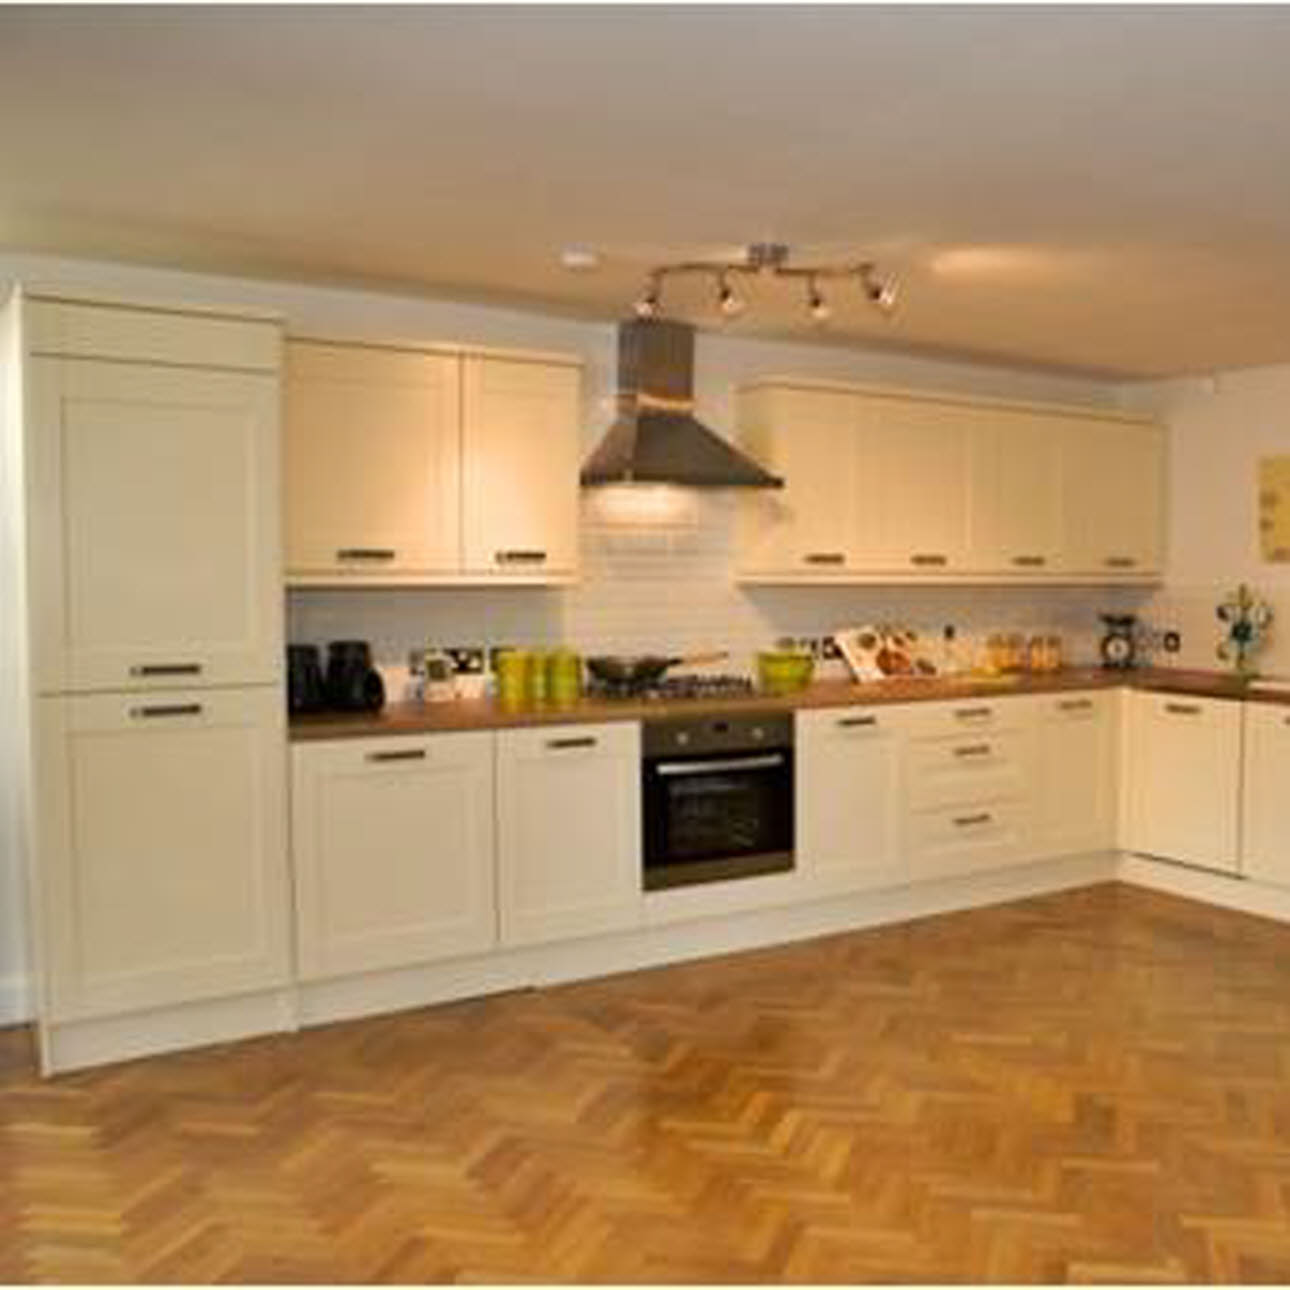 Cream Magnet fitted kitchen, wooden floor